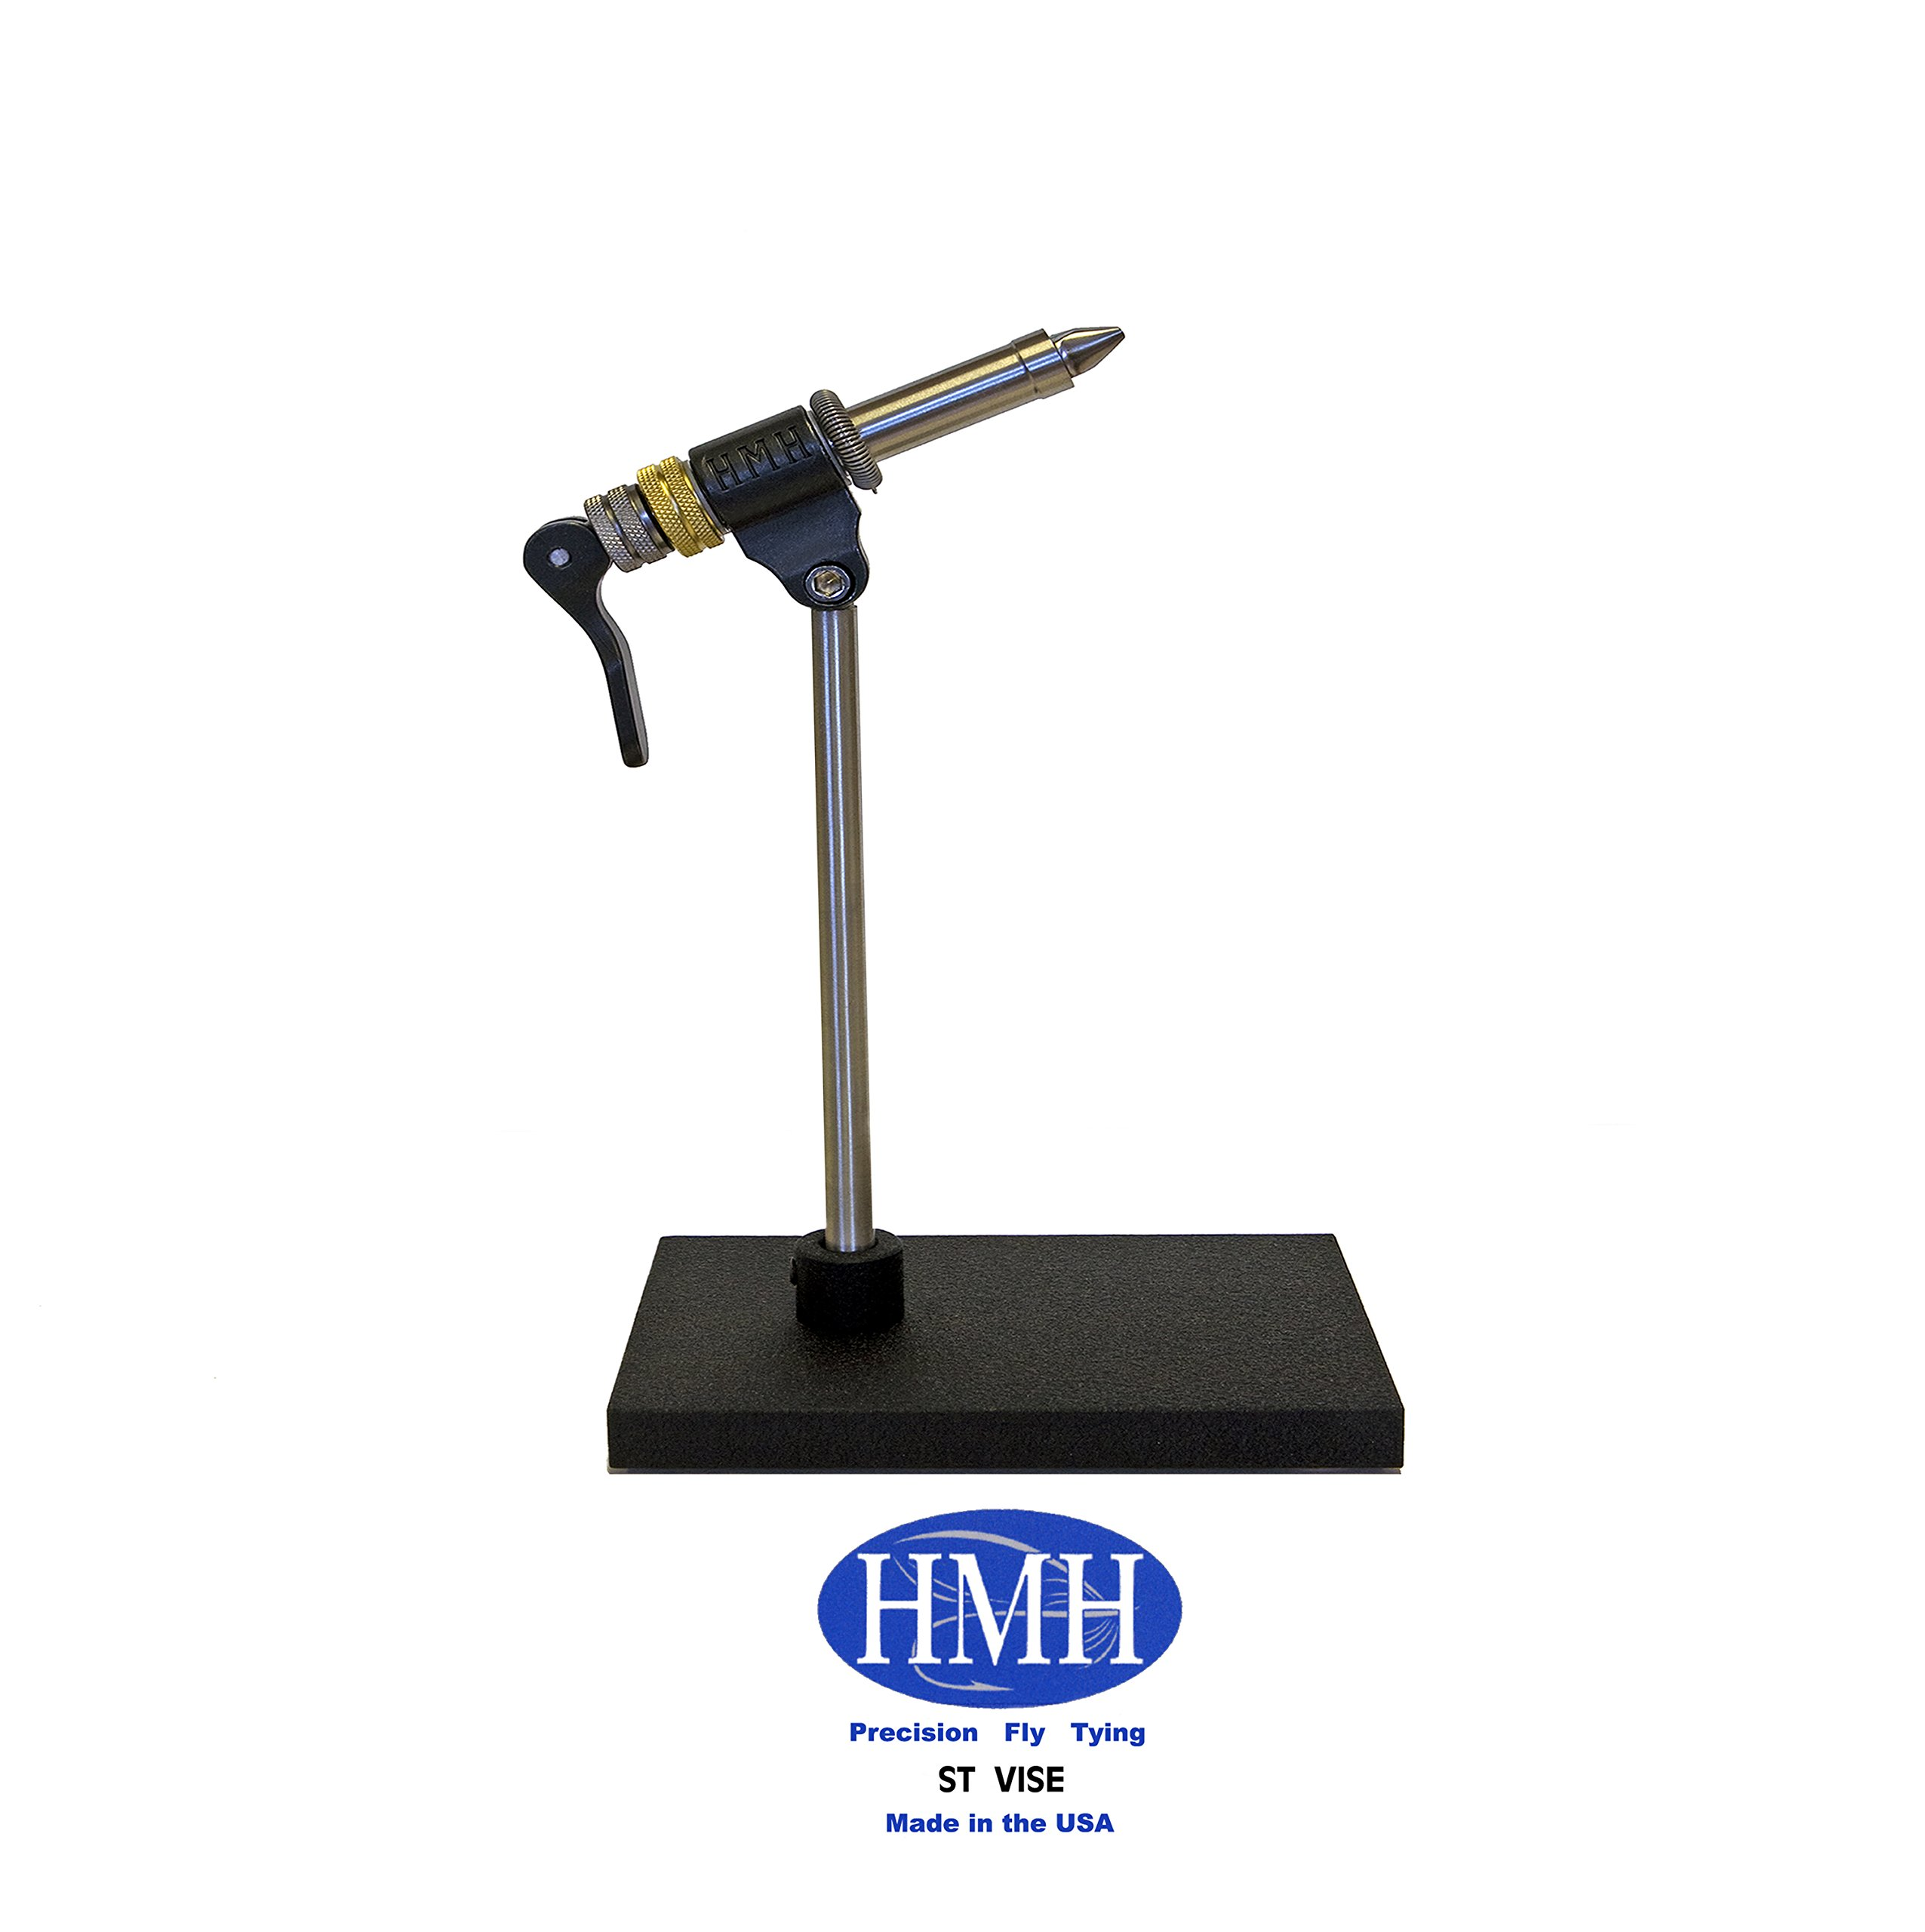 HMH ST VISE with Omni Jaw. CNC Machined in the USA. (Pedestal Model)